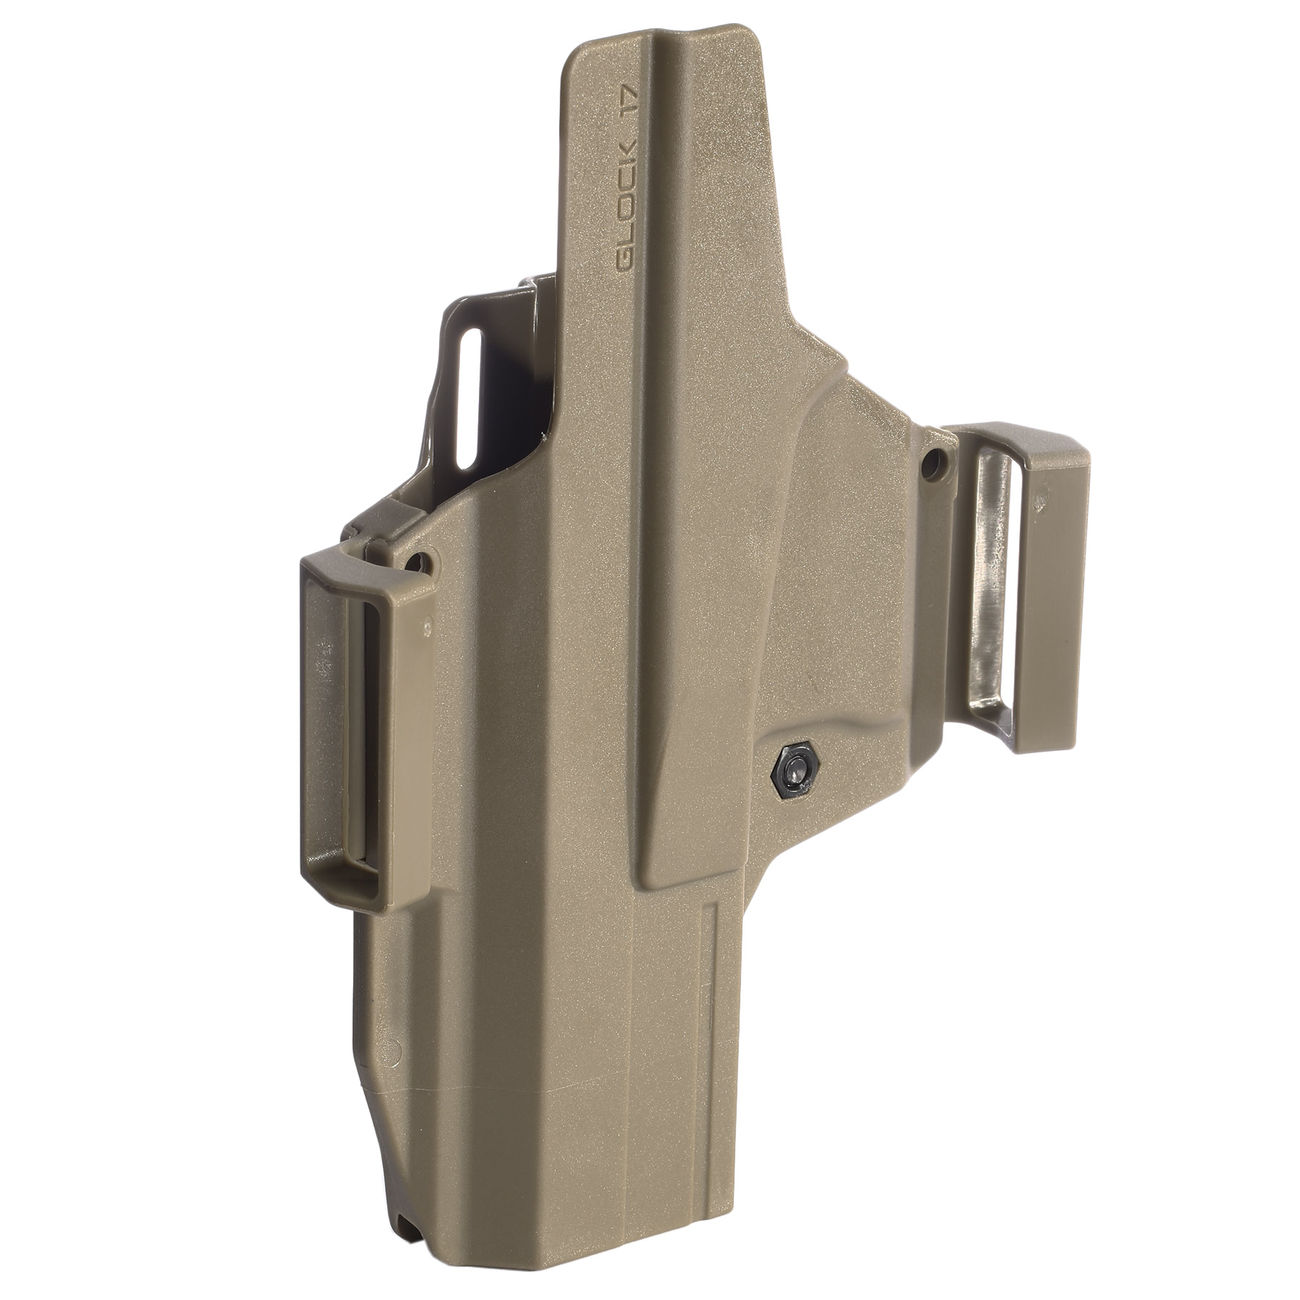 IMI Defense MORF X3 Polymer Holster IWB / OWB / Paddle für Glock 17 Rechts / Links Tan 5